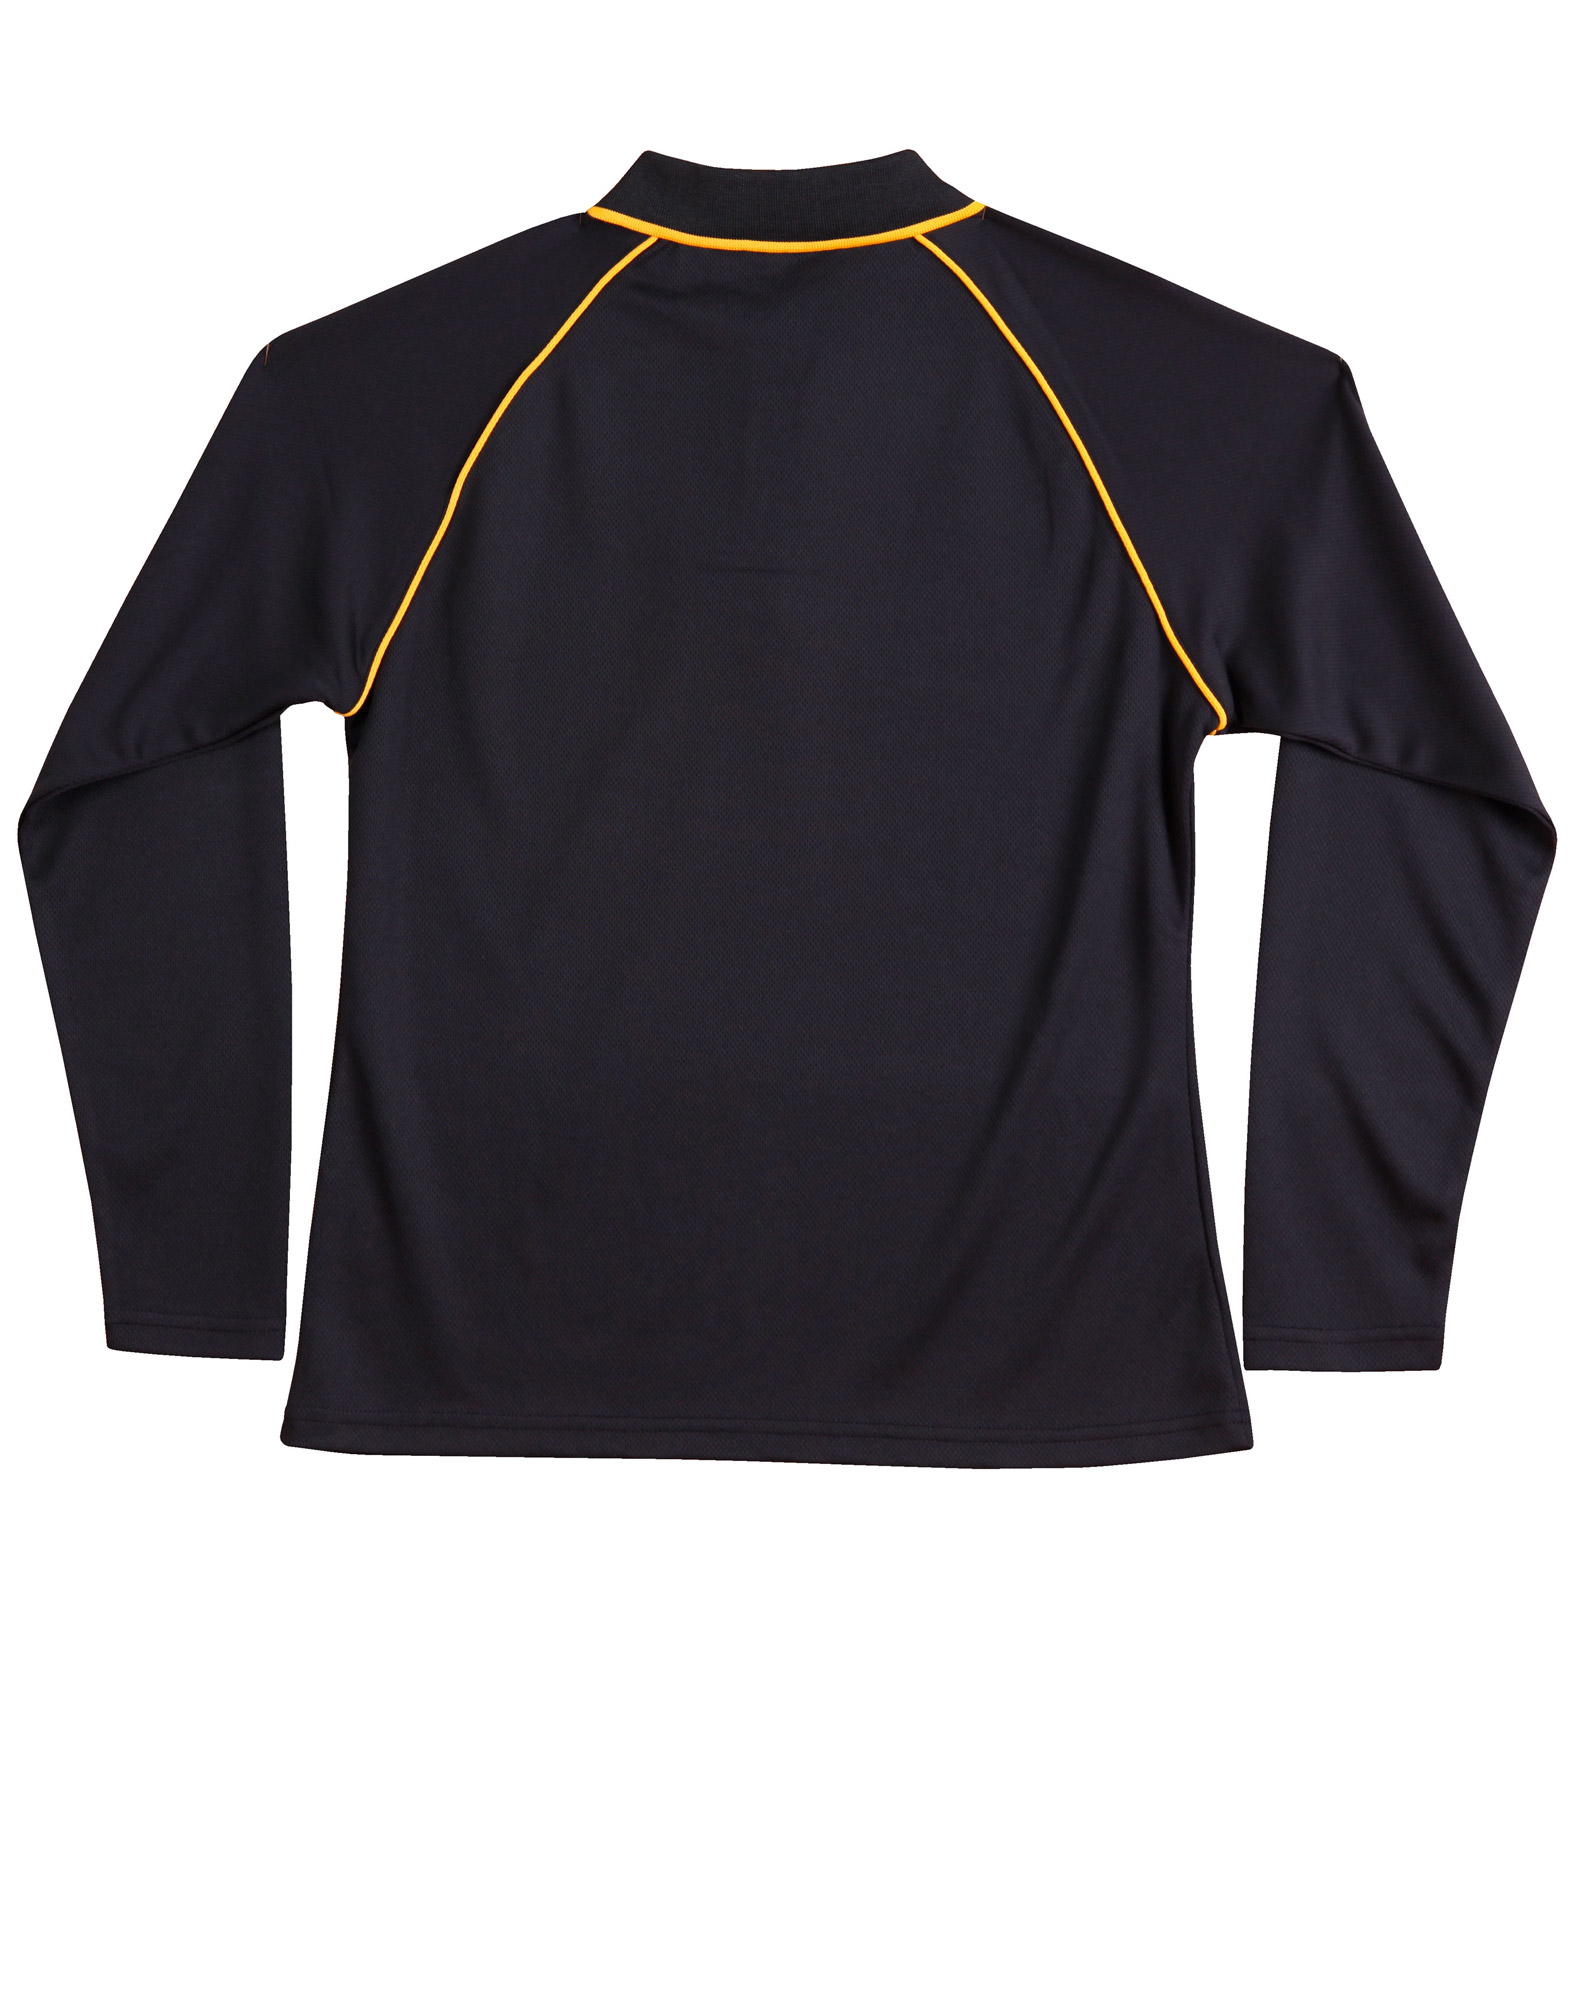 https://s3-ap-southeast-1.amazonaws.com/ws-imgs/POLOSHIRTS/PS44_NavyGold_Back_l.jpg